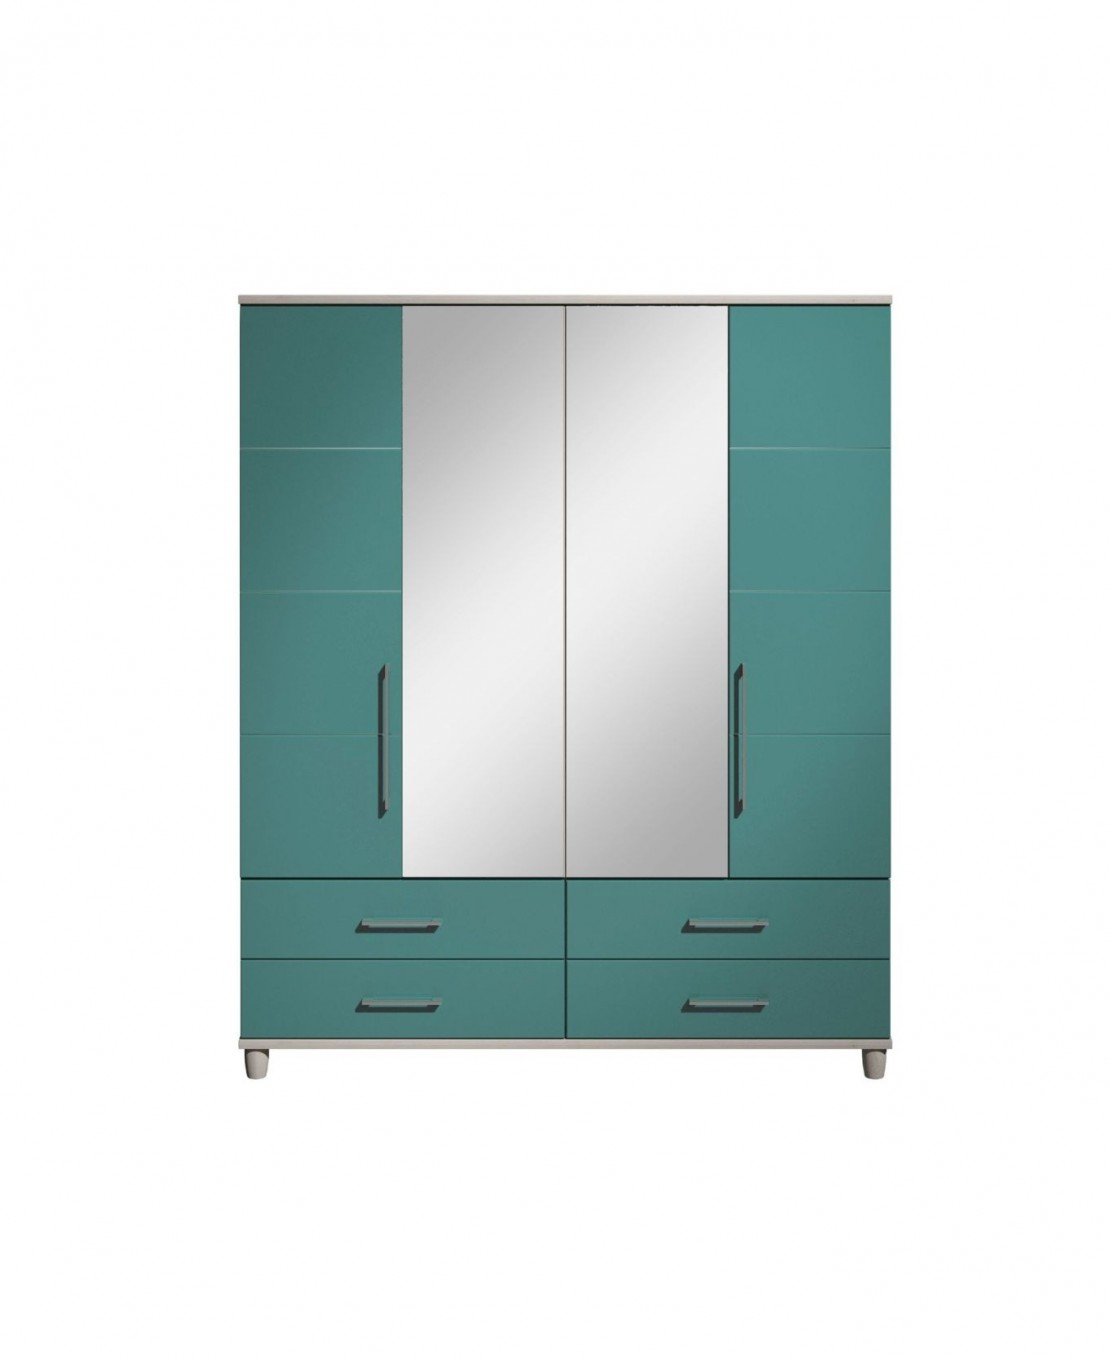 /_images/product-photos/kt-furniture-vardy-4-door-centre-mirrored-gents-robe-lagoon-a.jpg